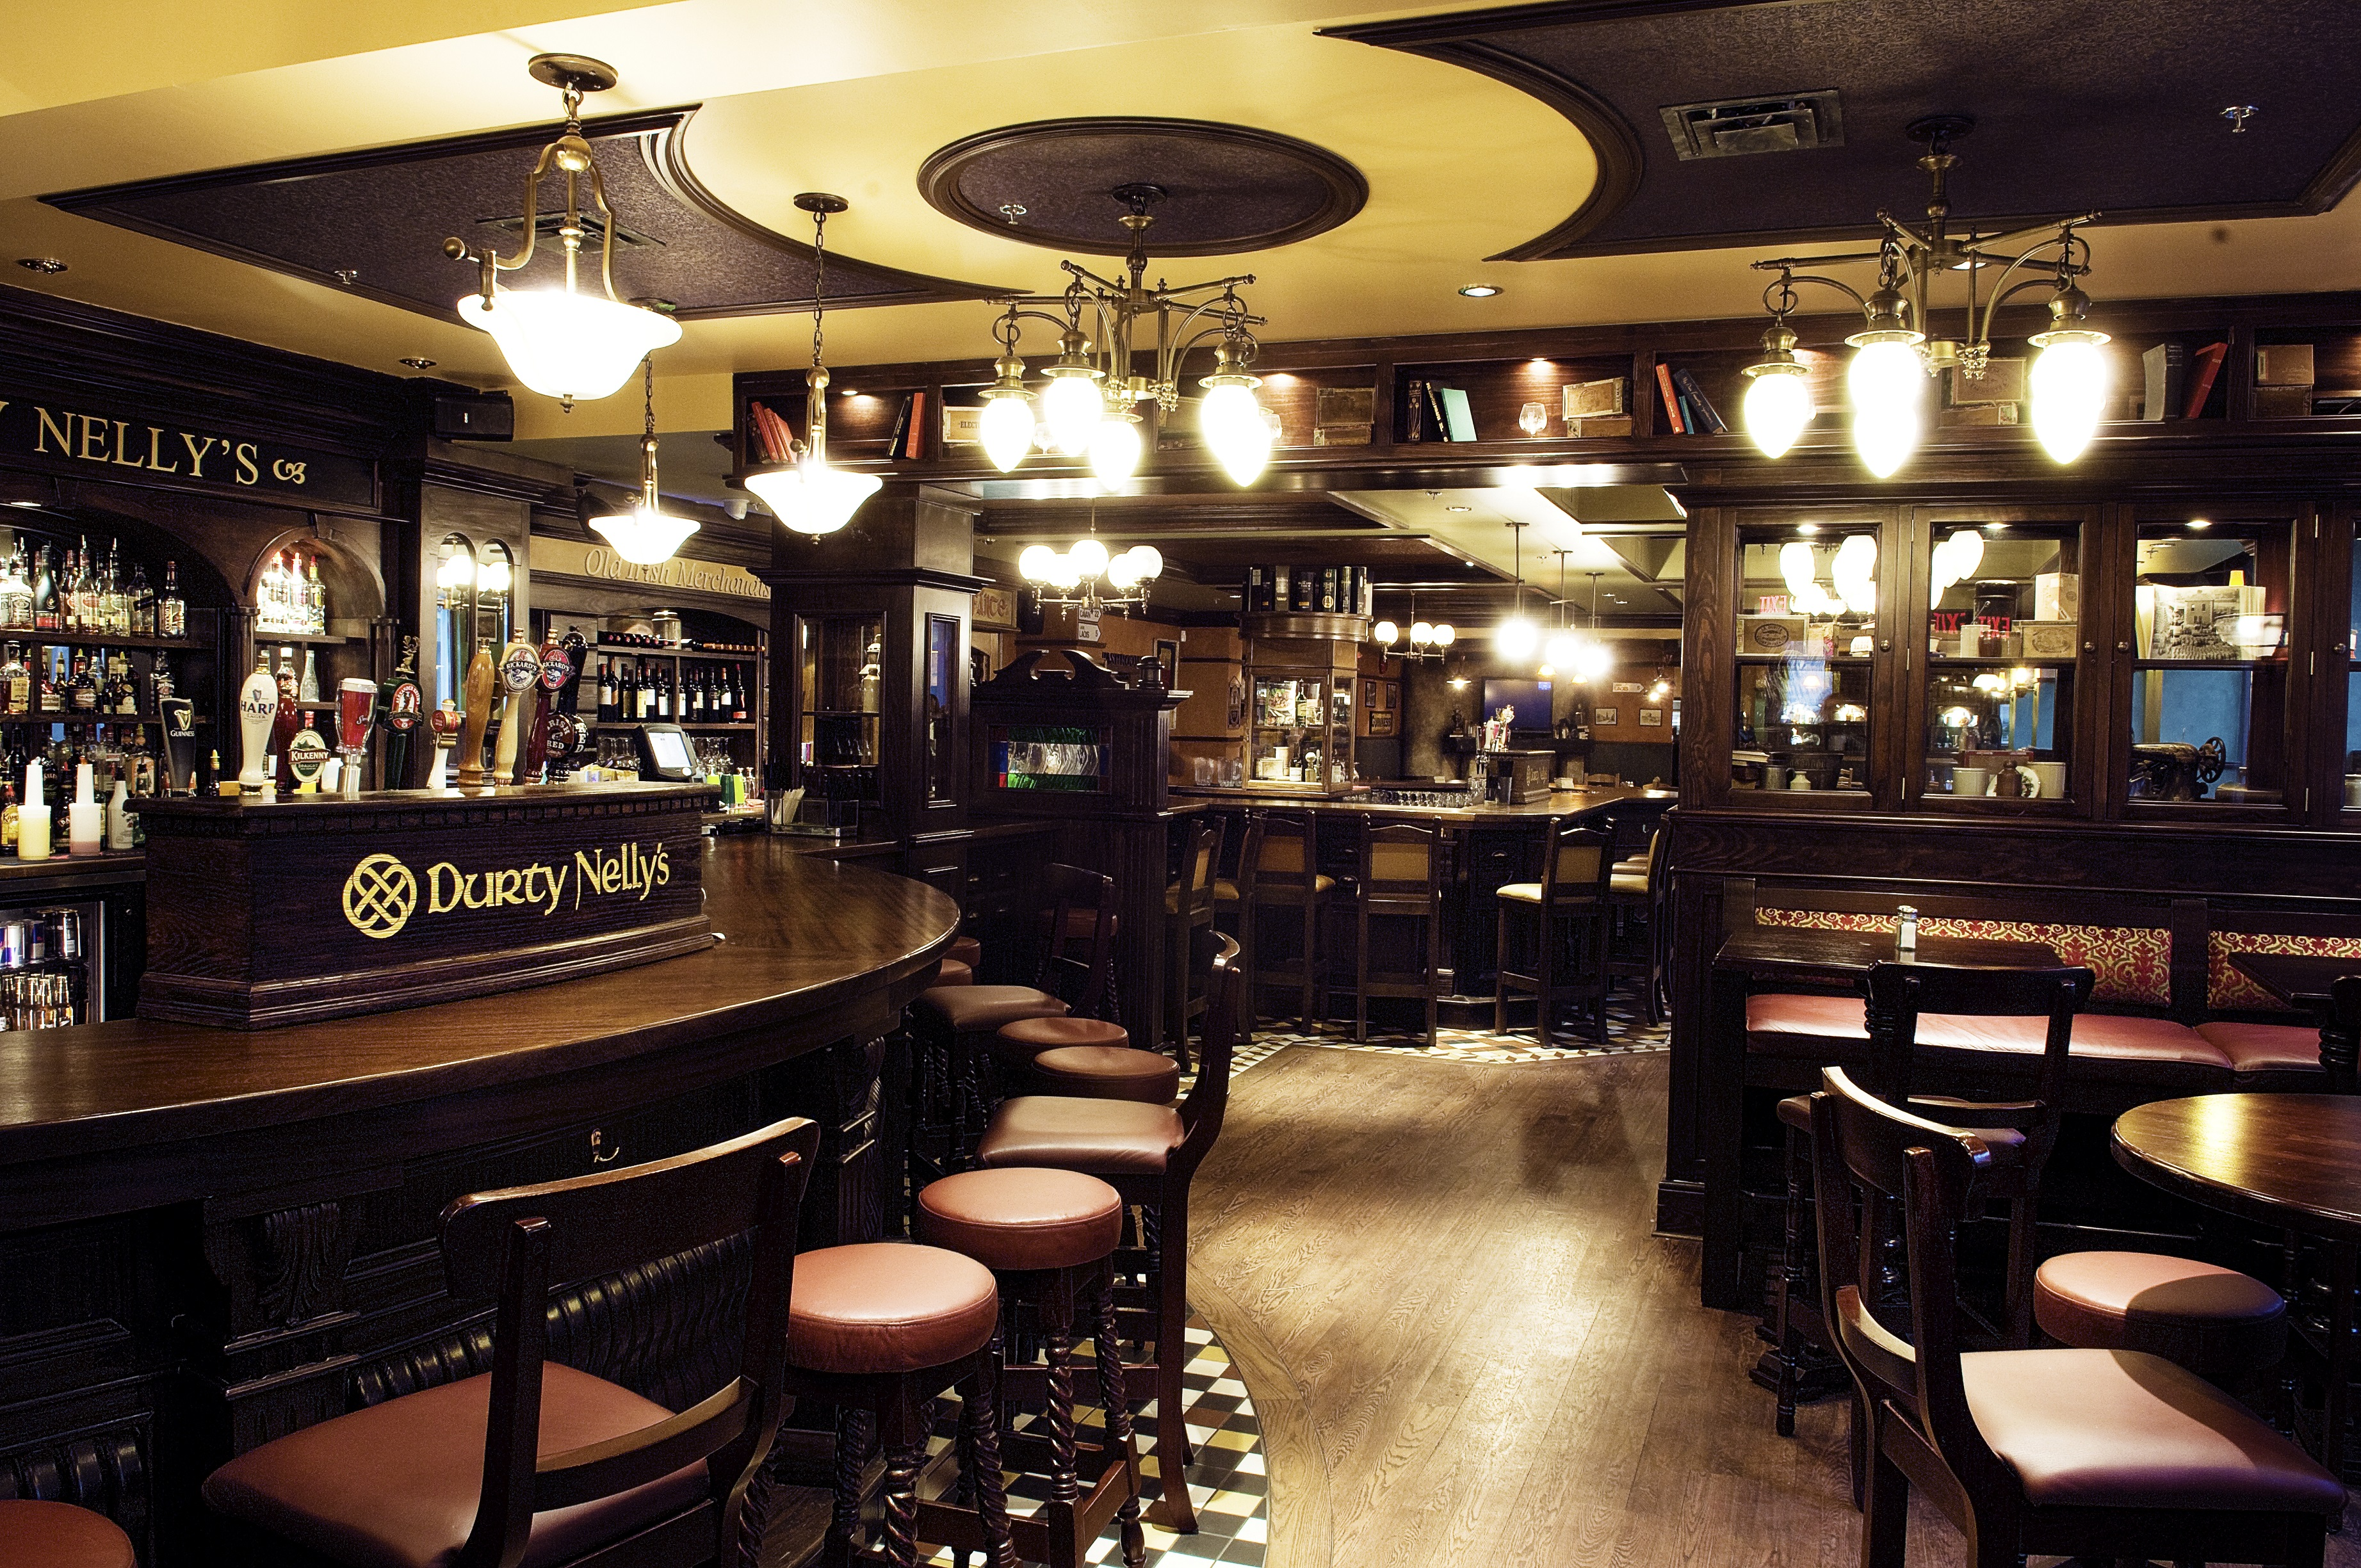 irish bar wallpapers high quality download free. Black Bedroom Furniture Sets. Home Design Ideas